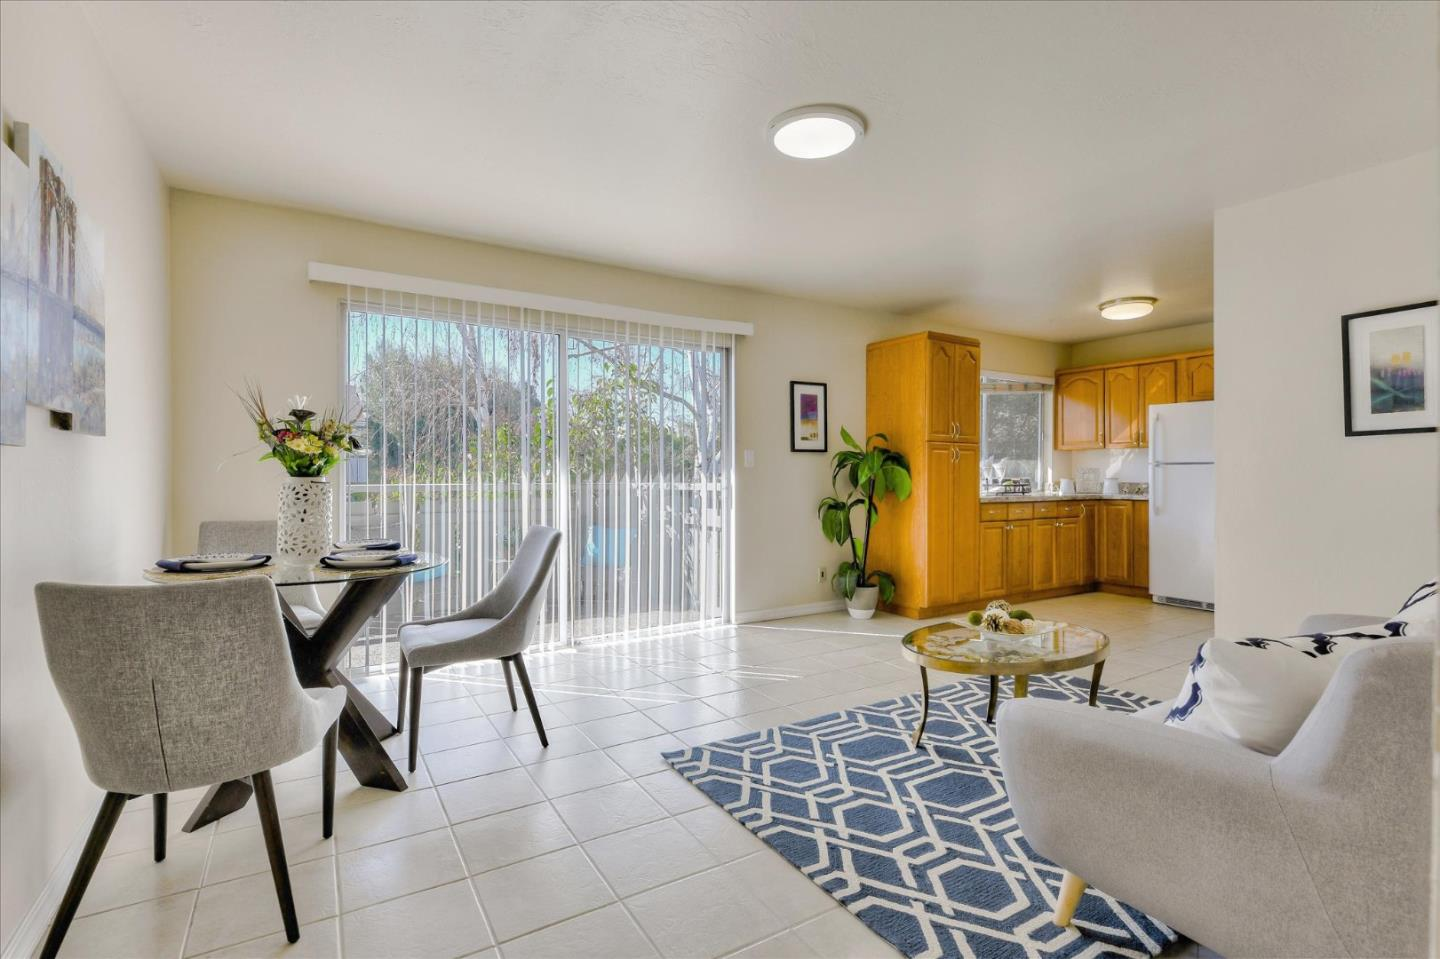 255 S RENGSTORFF AVE 164, MOUNTAIN VIEW, CA 94040